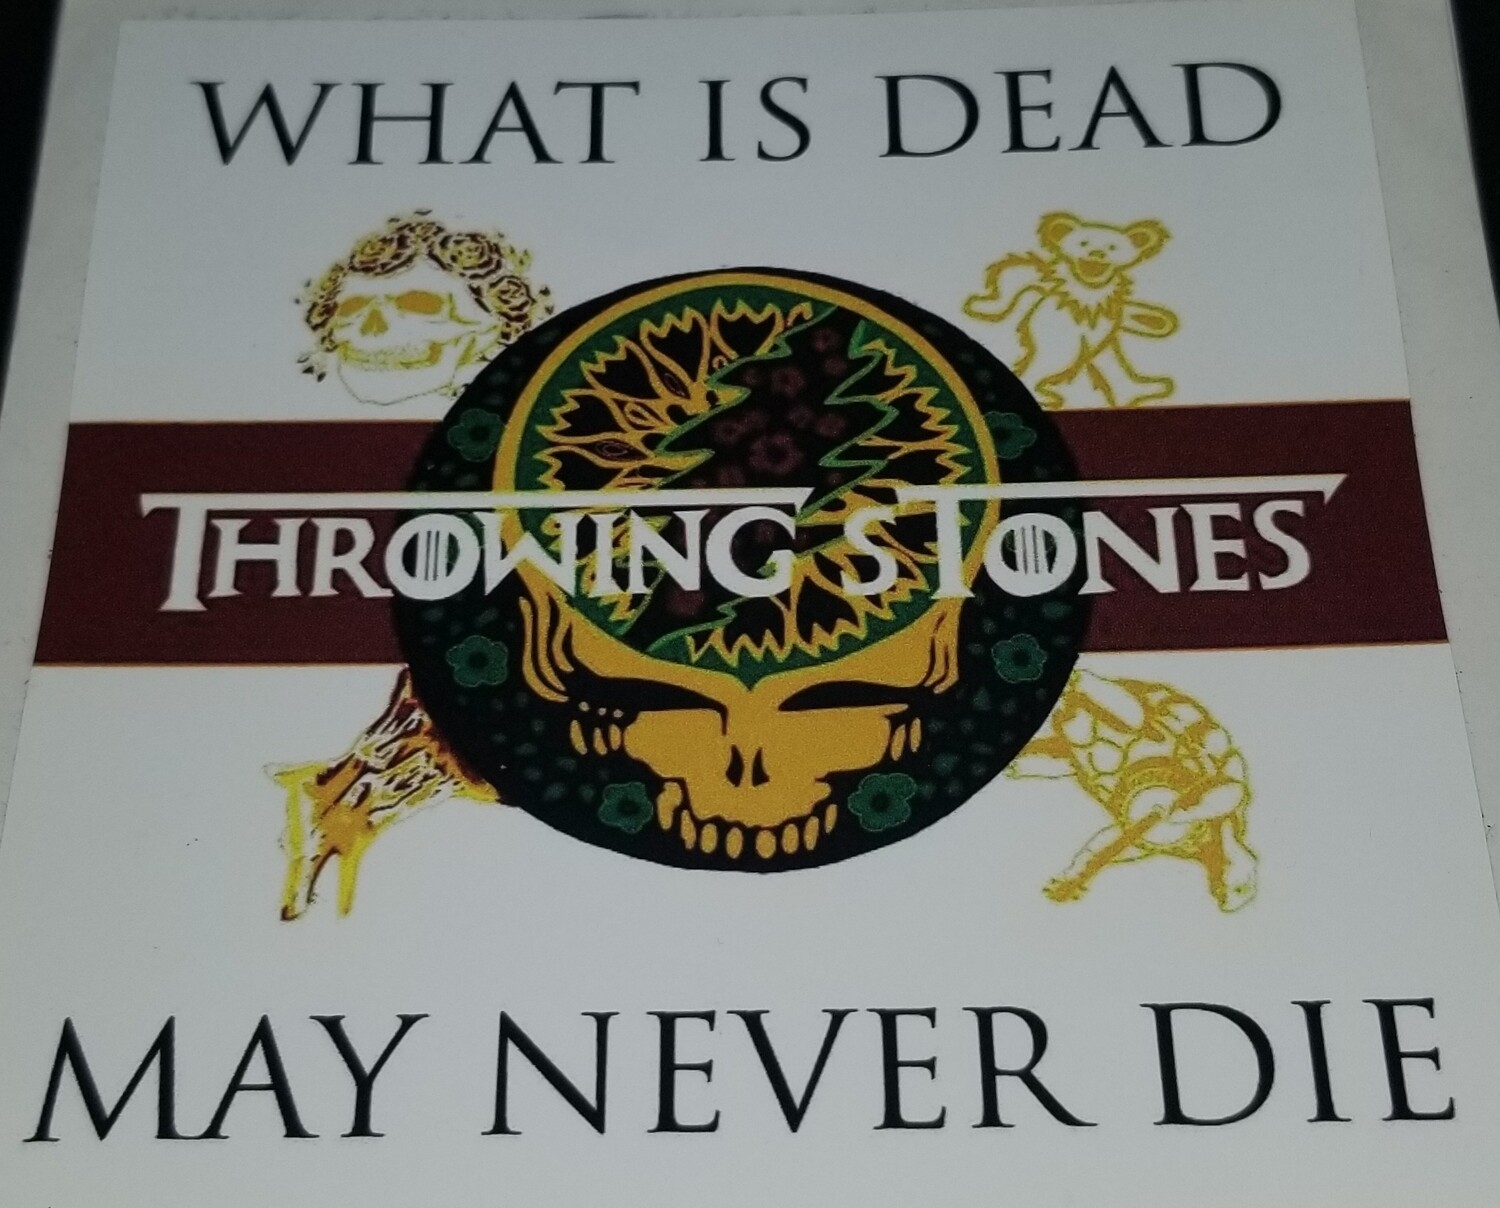 THROWING STONES: WHAT IS DEAD MAY NEVER DIE (sticker)